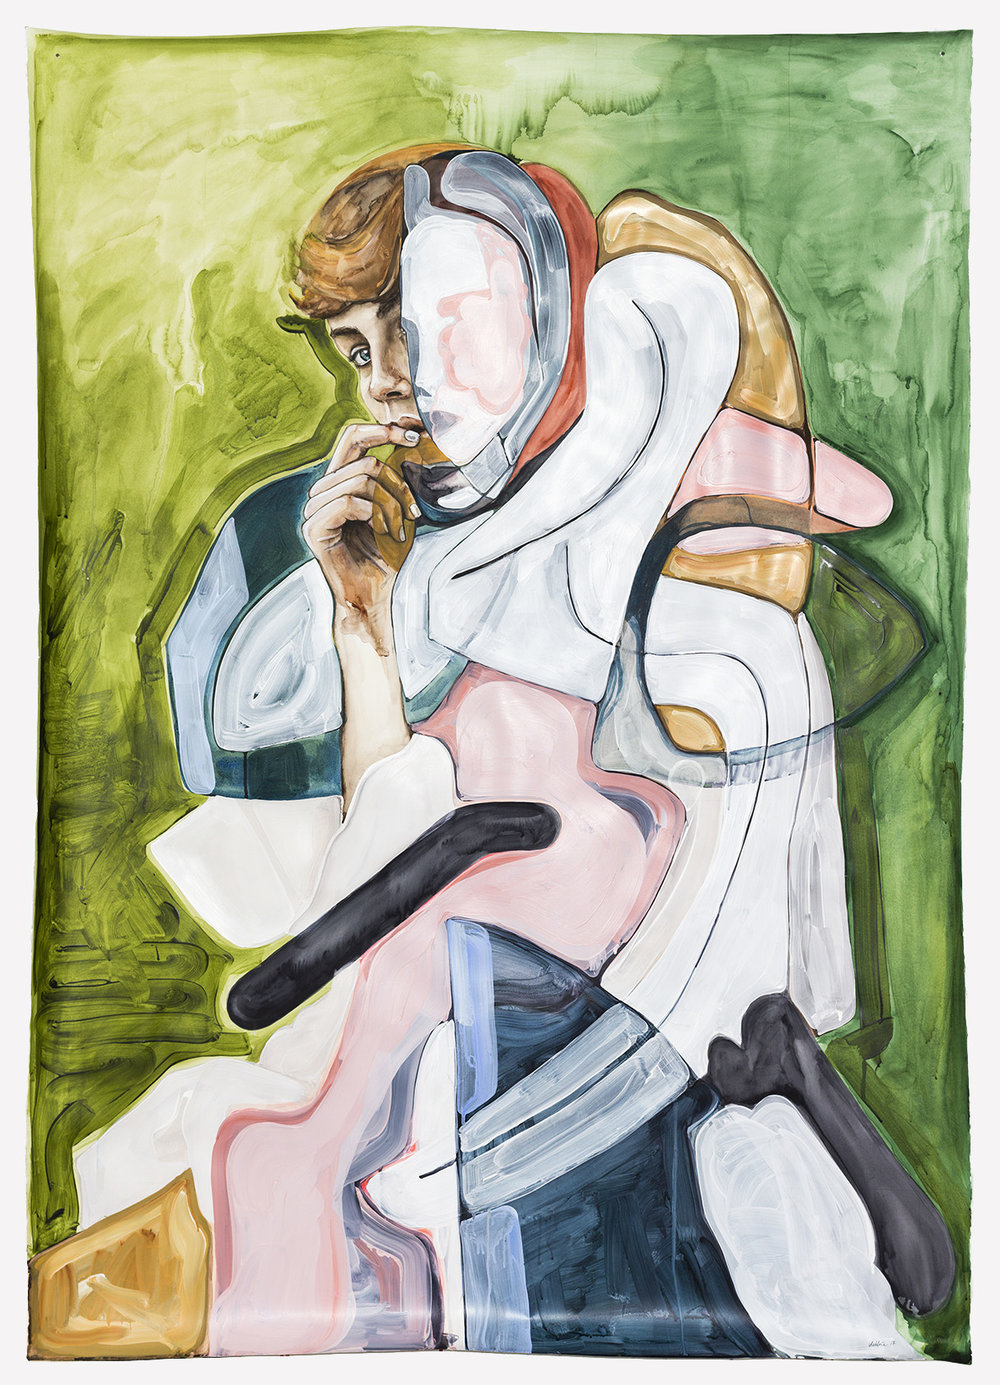 In-xcess  2017, Watercolour Gouache and Acrylic on Paper, 160 x 113 cm